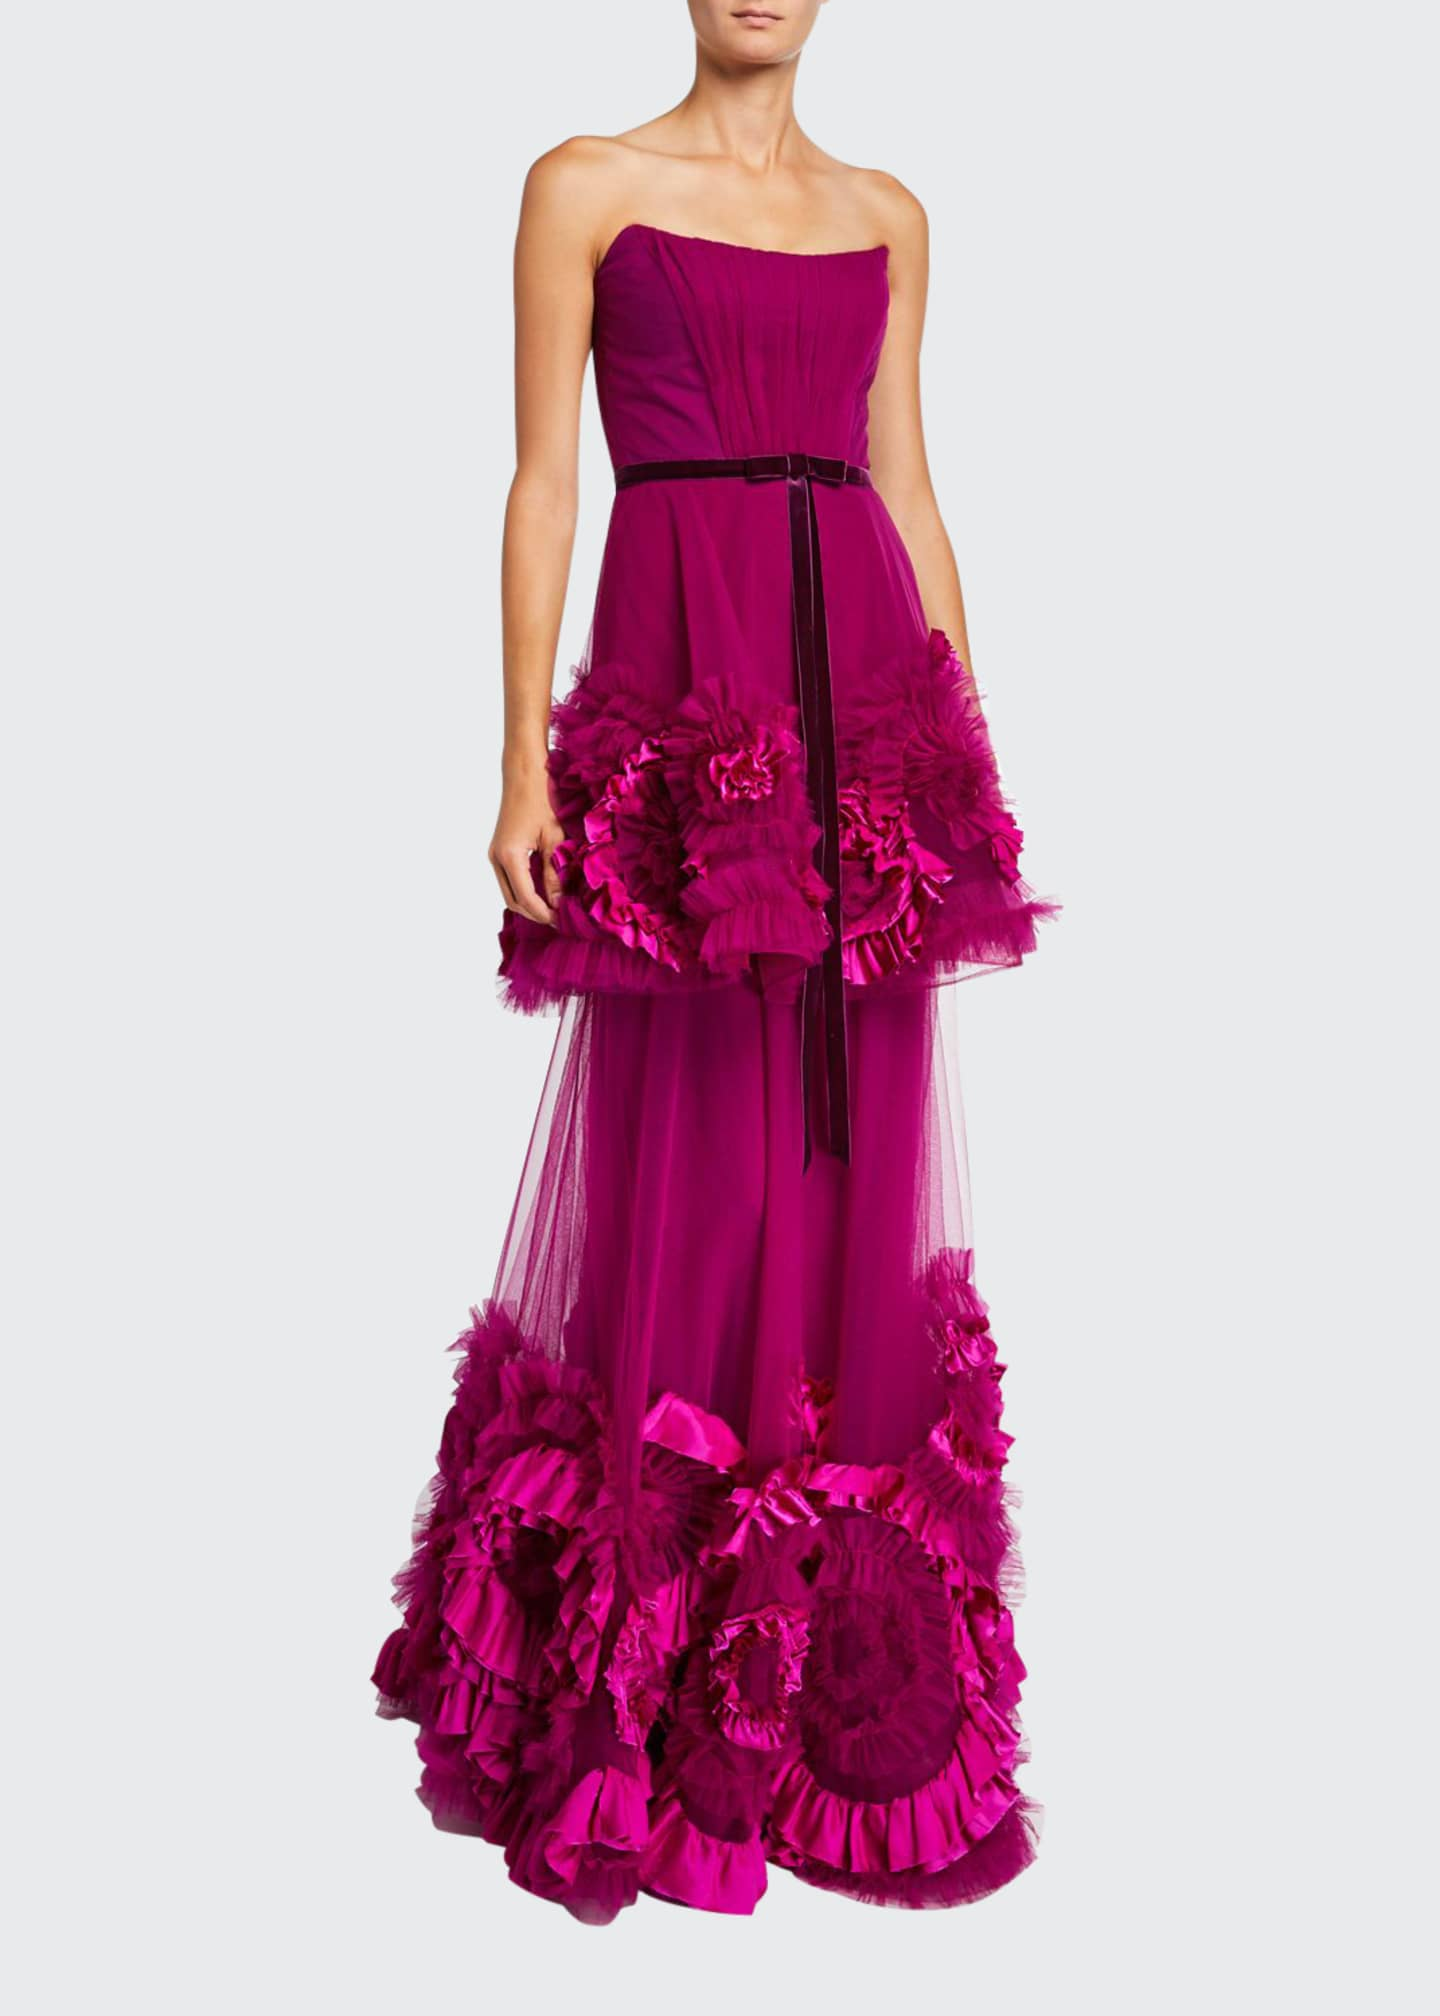 Marchesa Notte Strapless Mixed Media Textured Tiered Gown